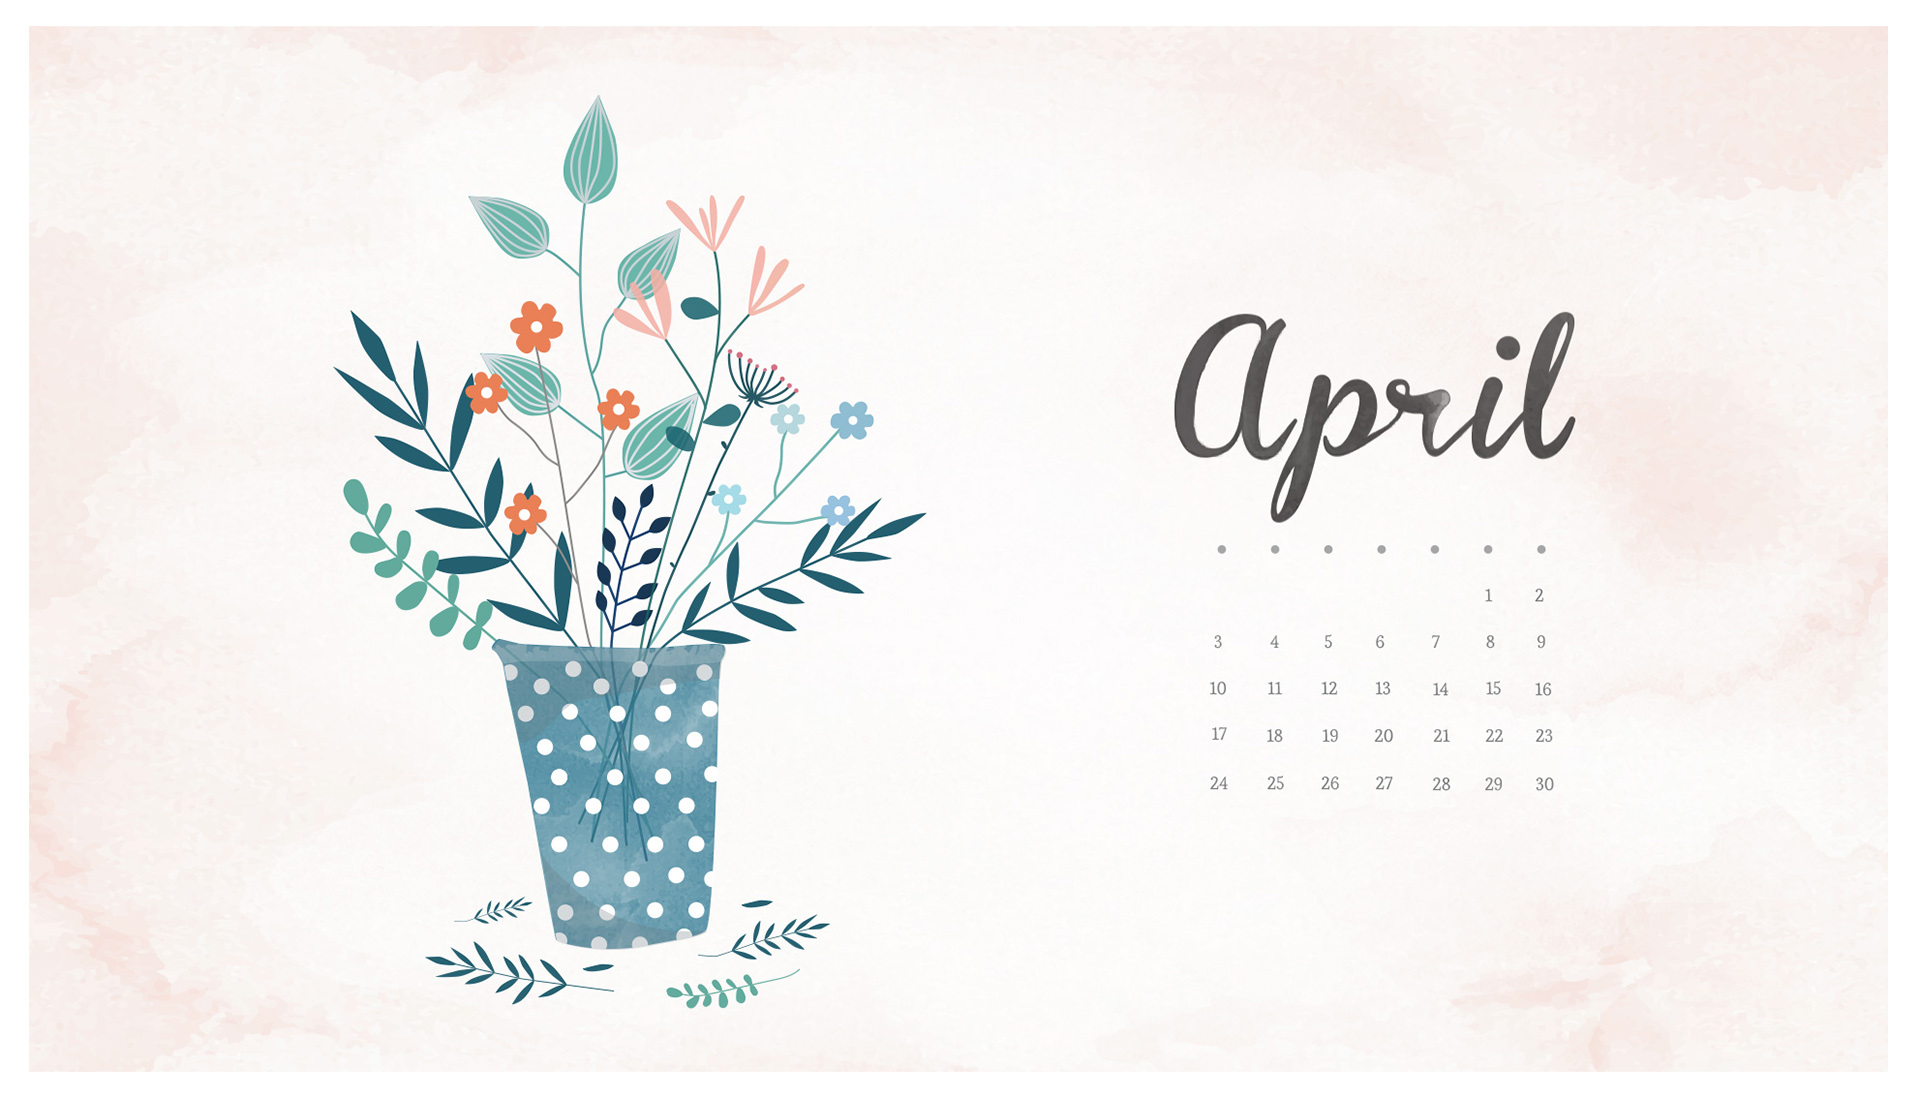 Wallpaper with April 2018 Calendar for PC iPad and SmartPhone 1920x1098